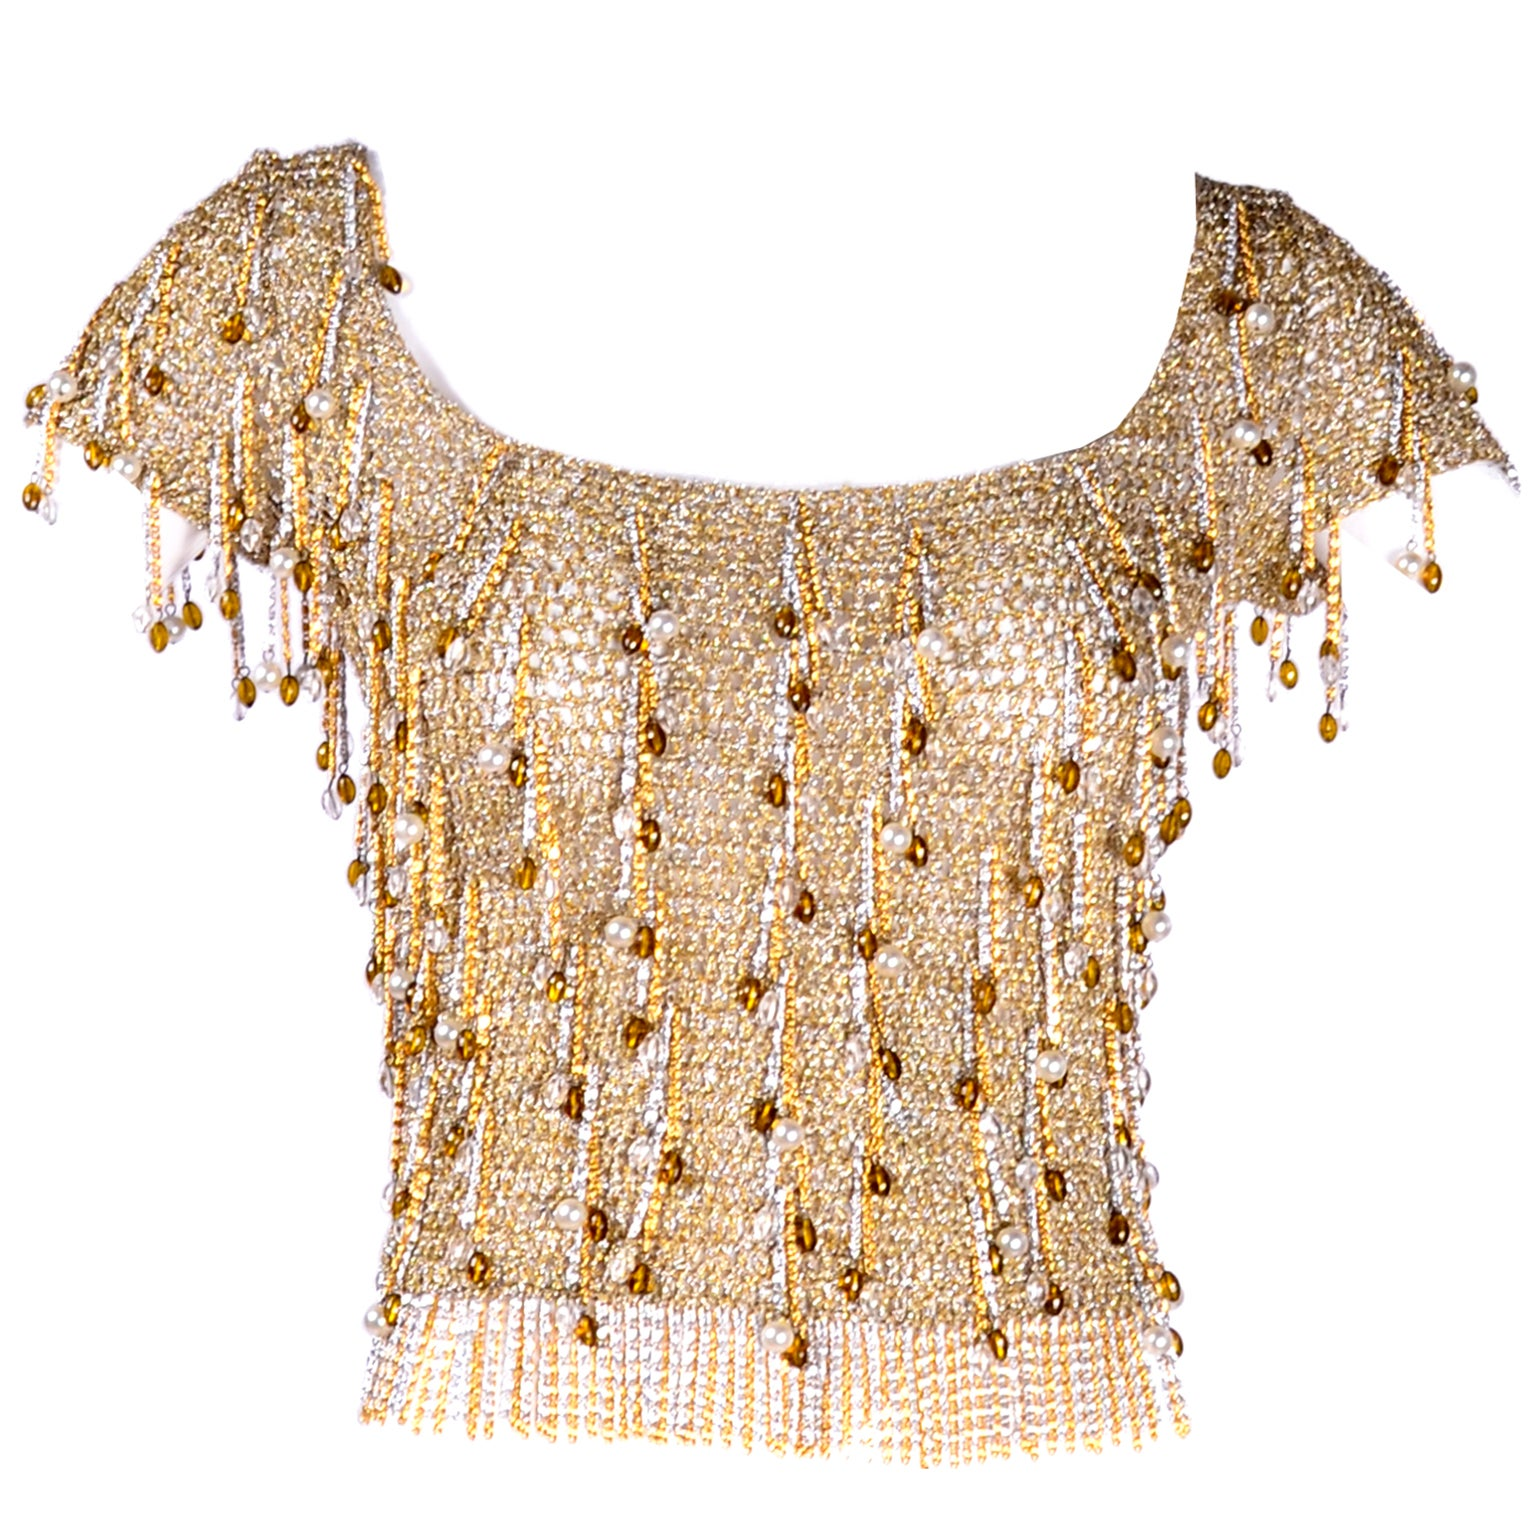 Loris Azzaro Beaded Silver and Gold Metallic Crochet Top with Chains, 1970s